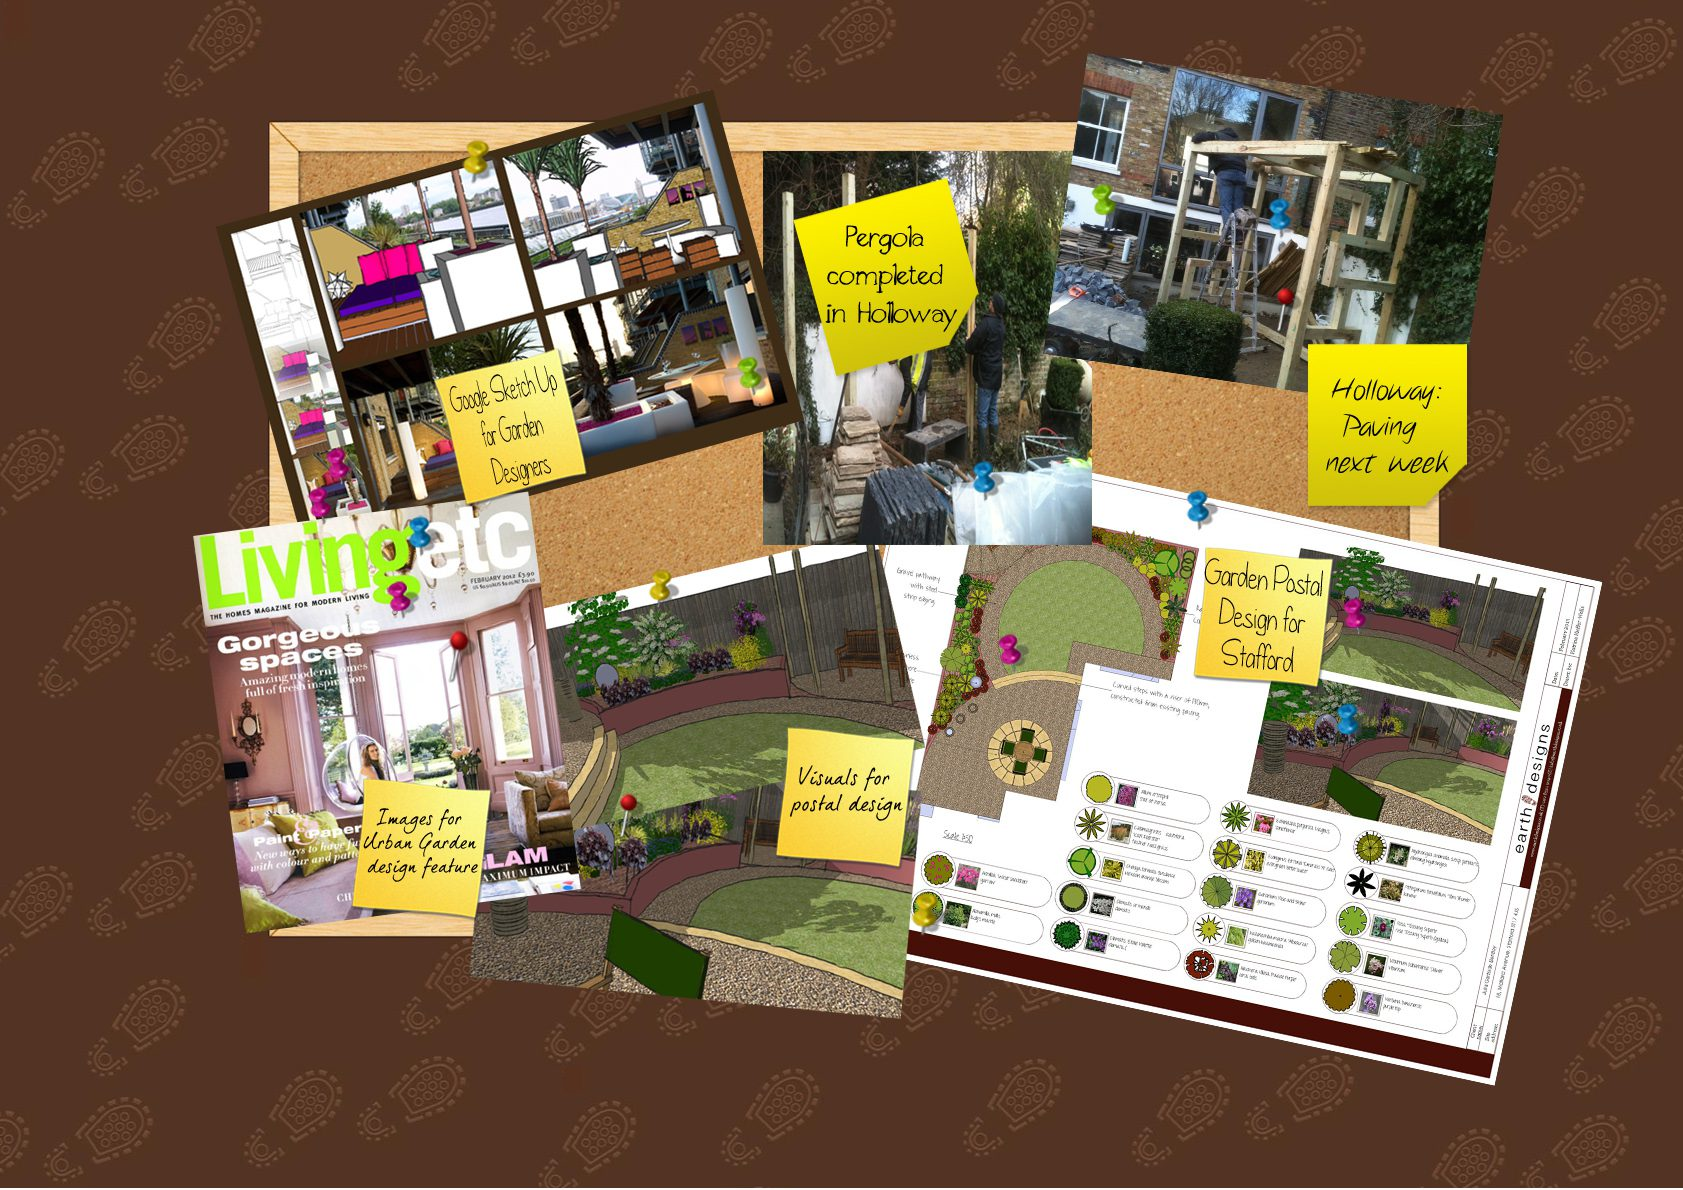 Blog Page 36 of 66 Earth Designs Garden Design and Build